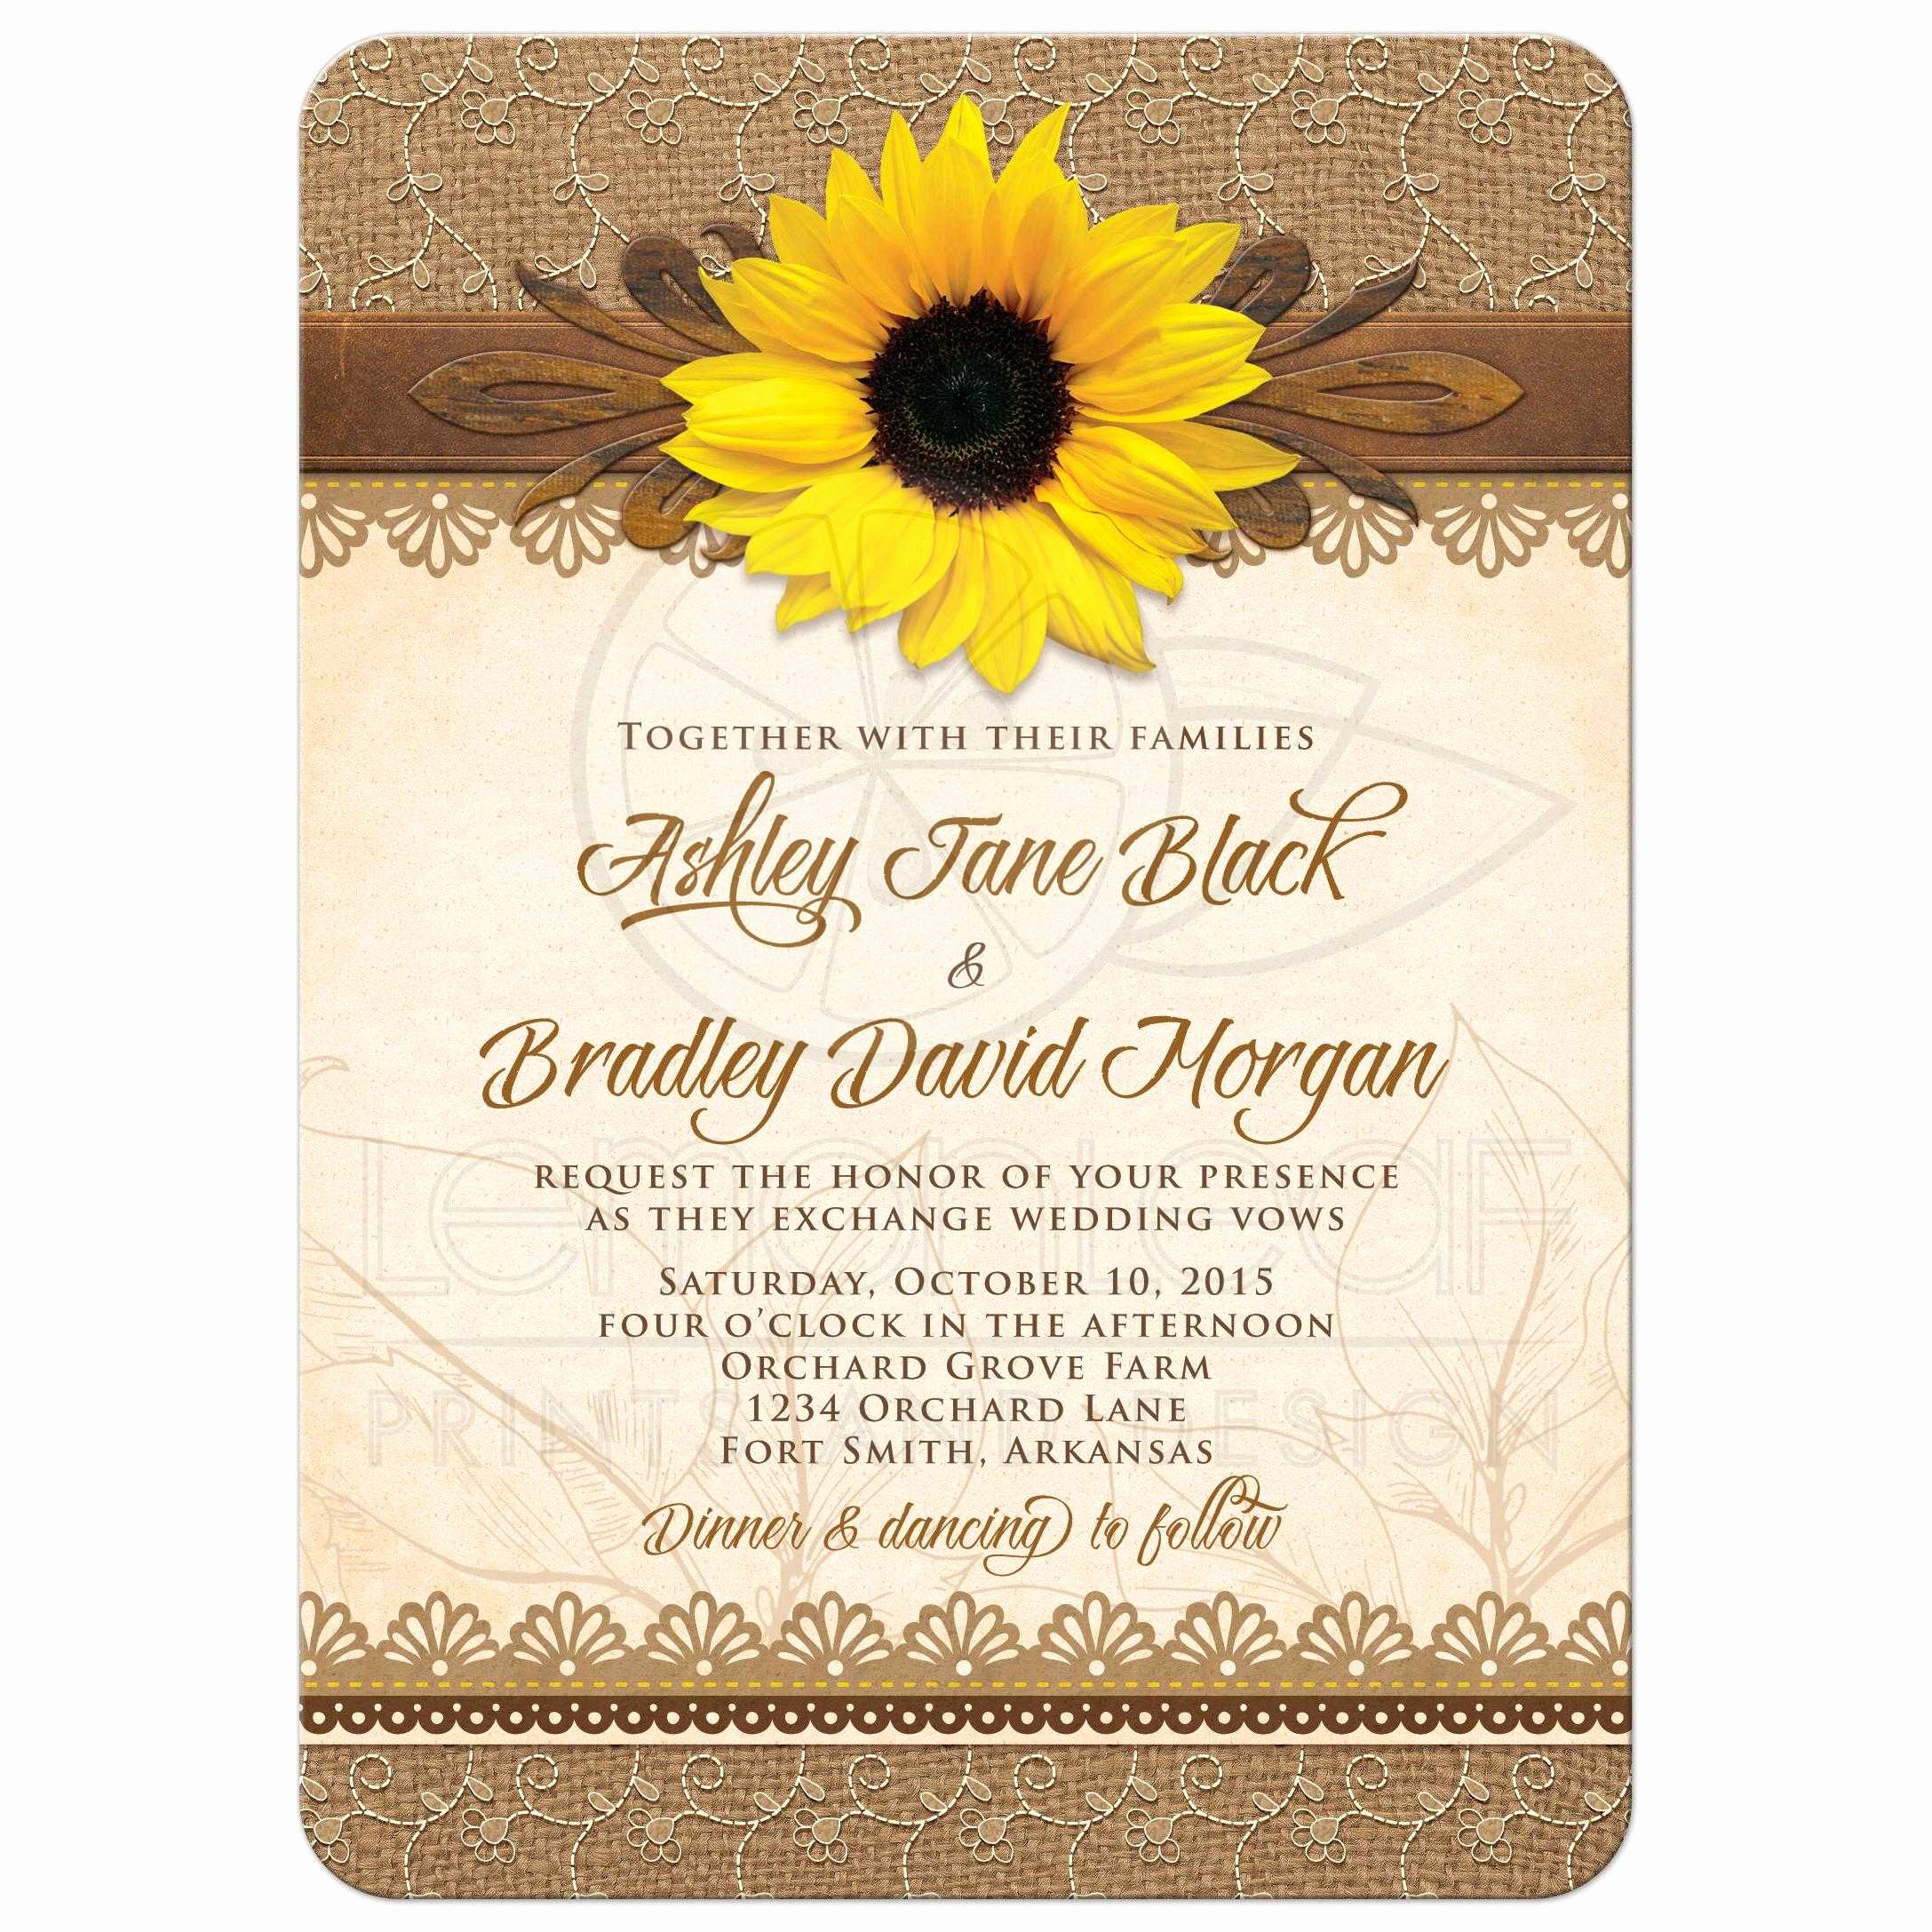 Wedding Invitations with Pictures New Wedding Invitation Rustic Sunflower Burlap Lace Wood